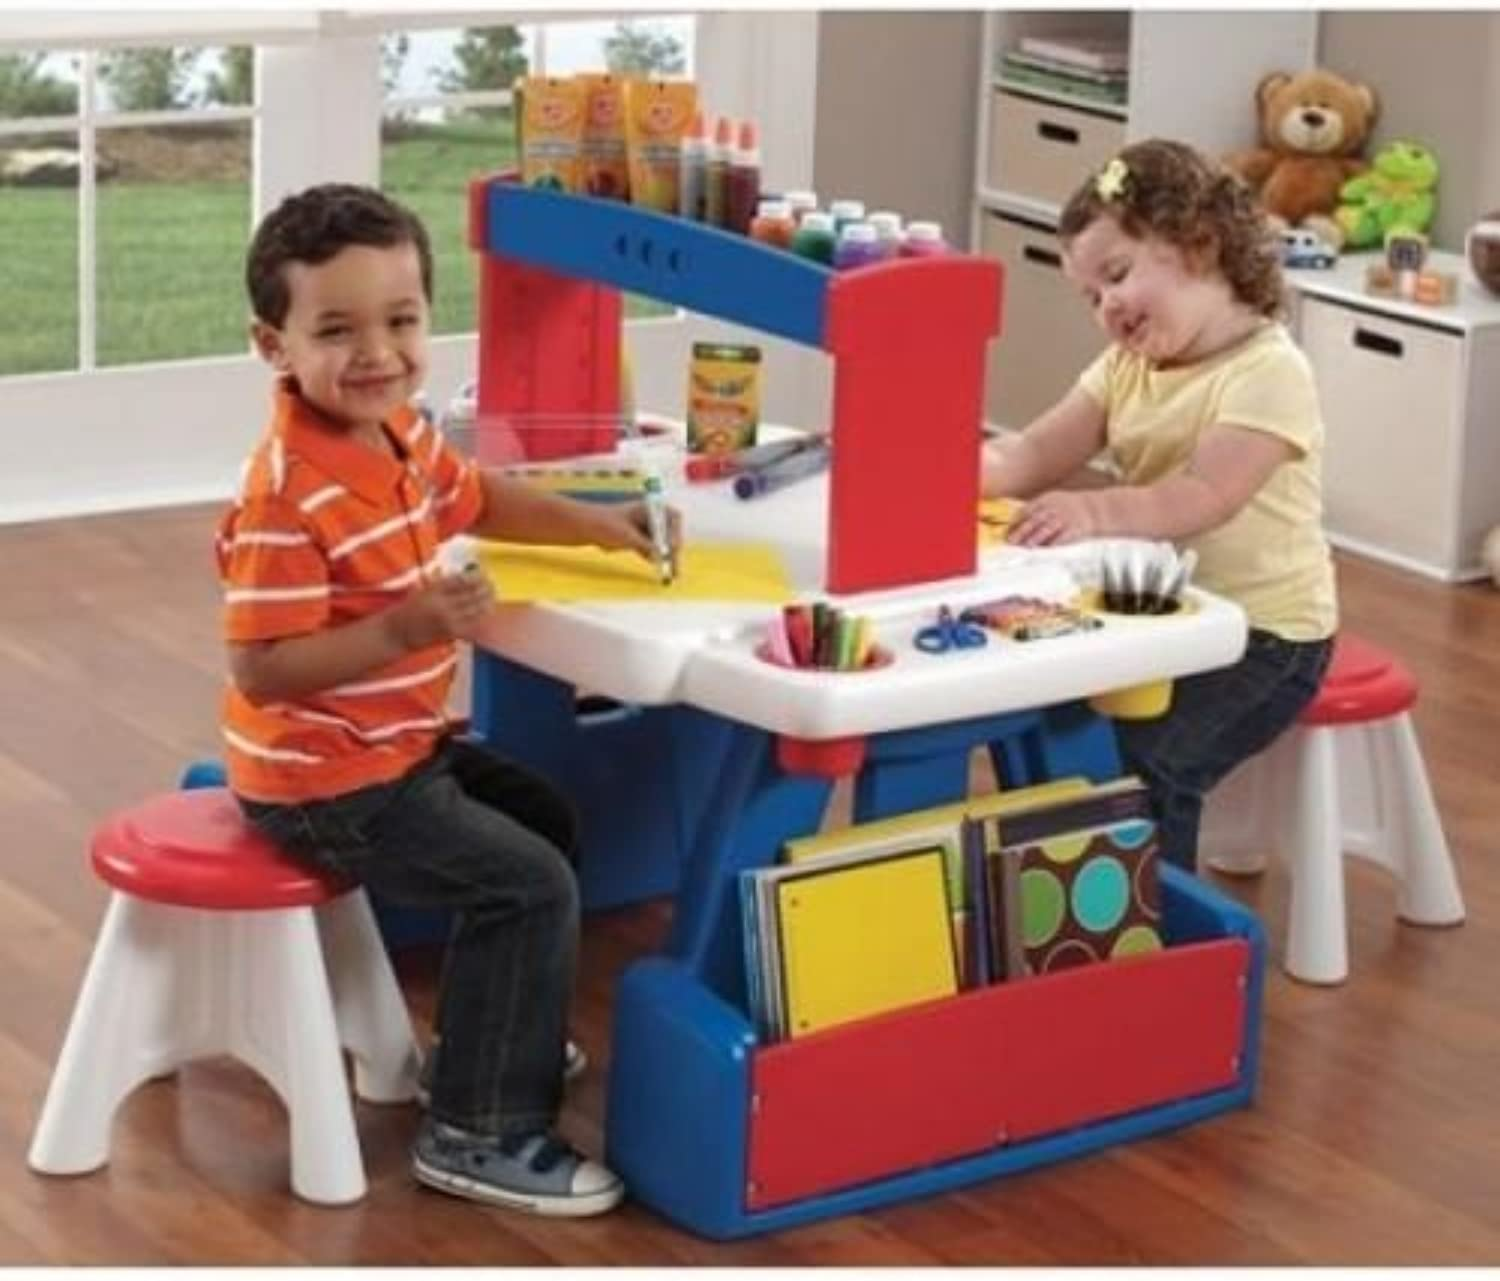 Generic .. d Chairs Wi Kids Activity Table ivity Tab Storage Plastic With Stora Toddler Furniture c Todd And Chairs With re Play Play Set Furnitur ..